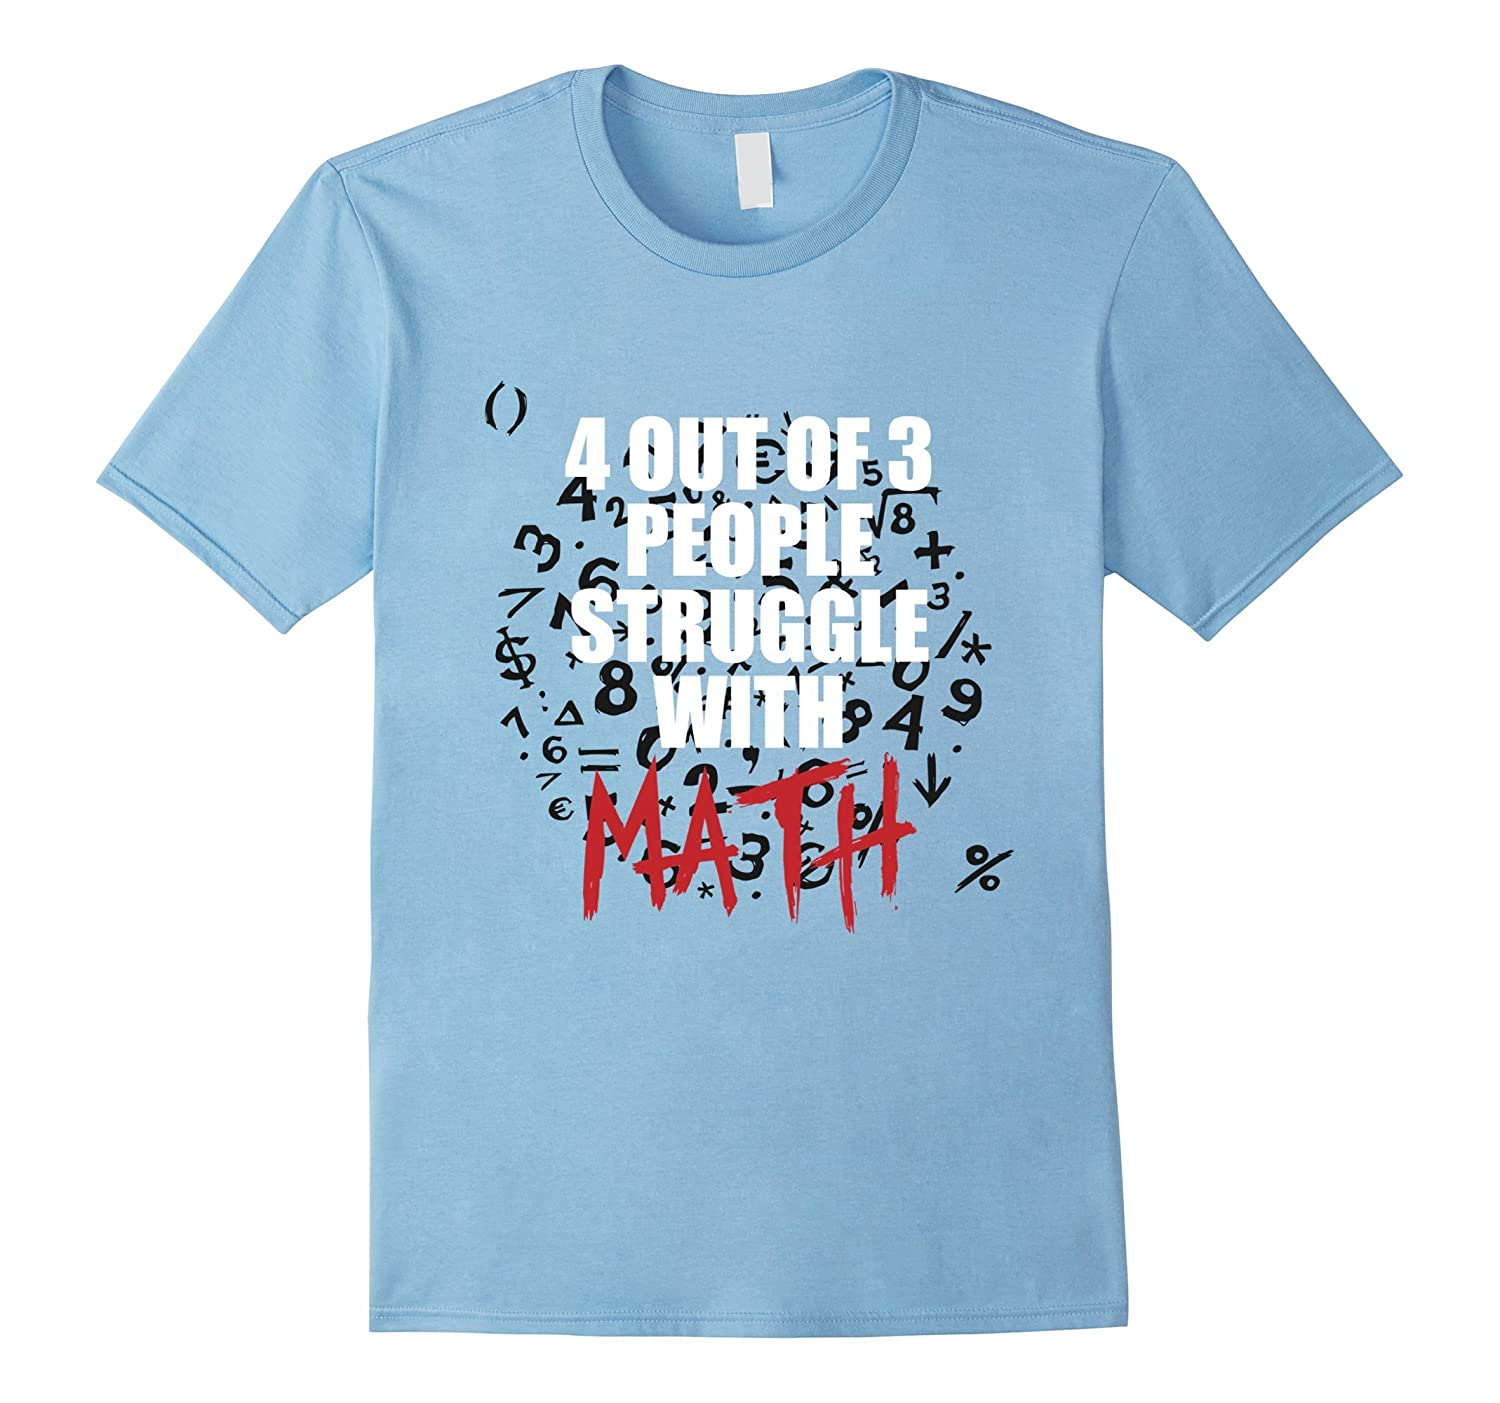 4 Out Of 3 People Struggle With Math Is Hard WTF Tee Shirt-CL